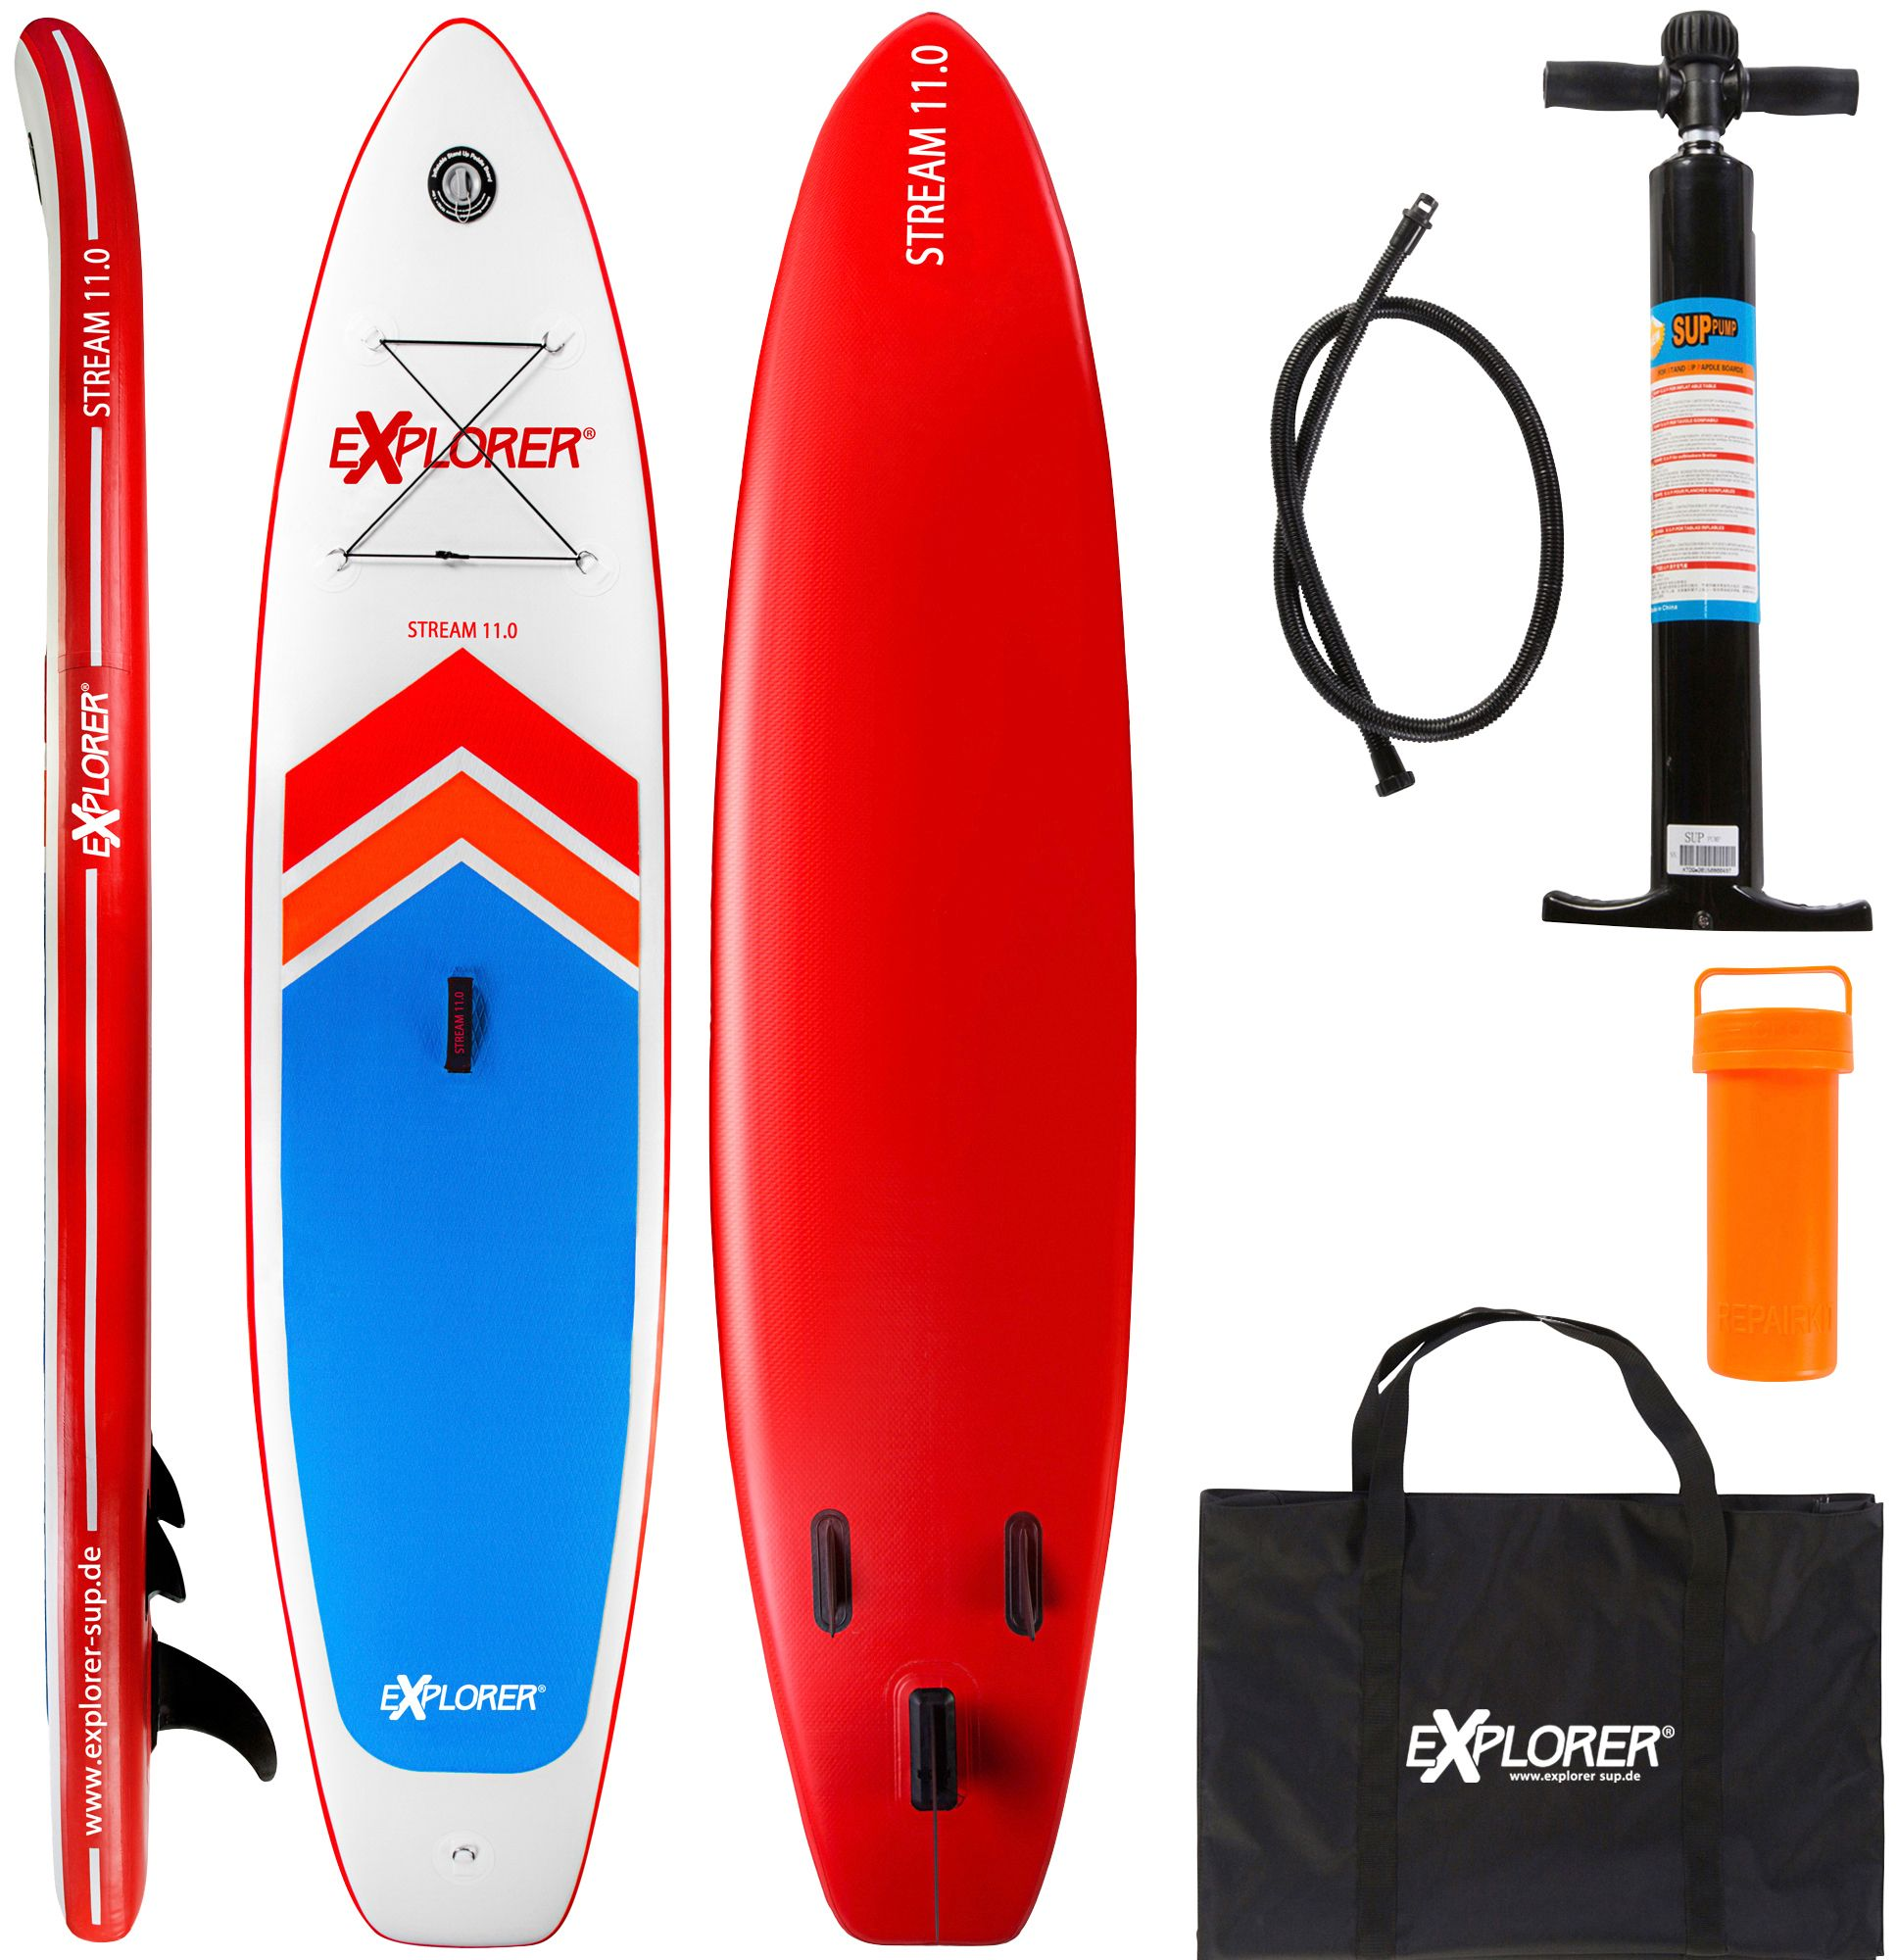 EXPLORER Explorer Stand Up Paddle SUP-Board »Stream 11.0«, BxL: 75 x 335 cm